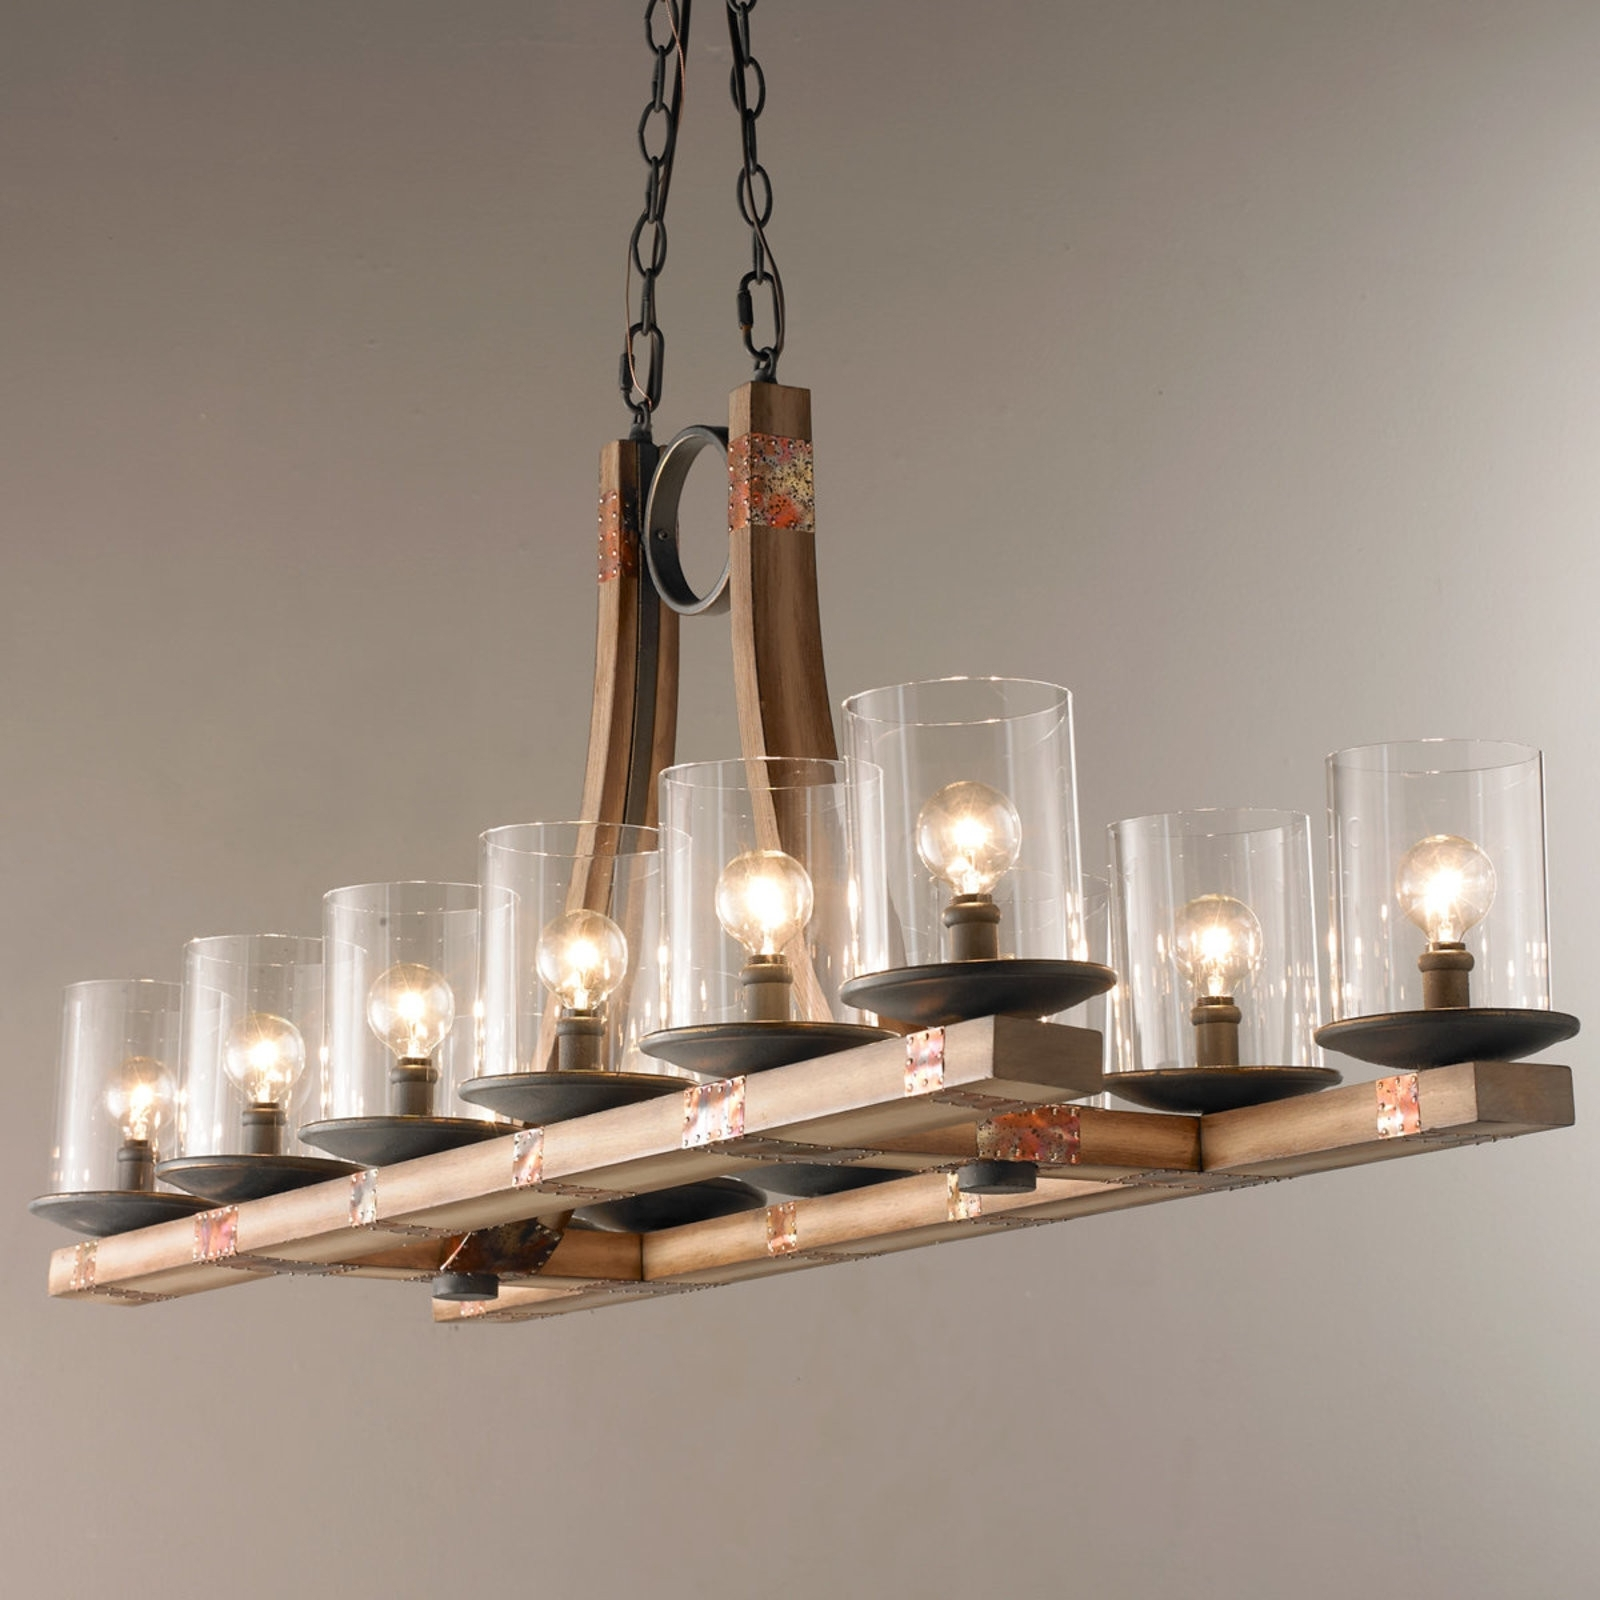 Well Liked Hanging Candle Chandeliers In Hanging Candle Chandelier Wooden – Chandelier Designs (View 13 of 20)